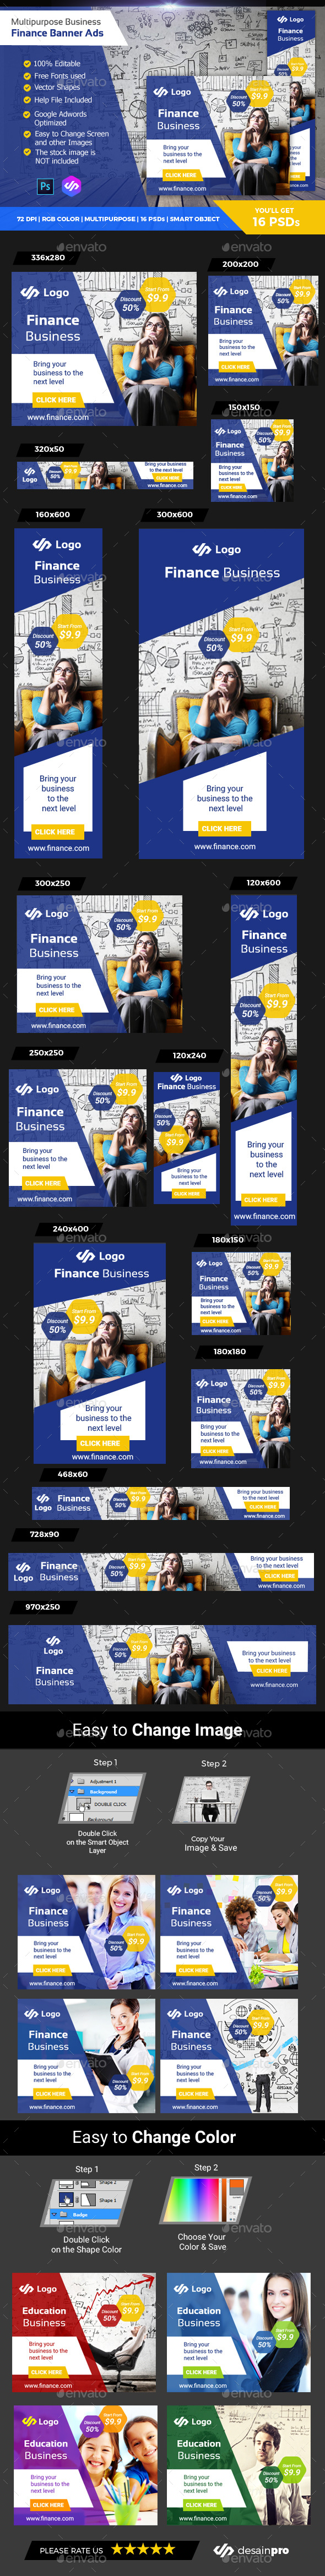 Business Finance Banner Ads - Banners & Ads Web Elements